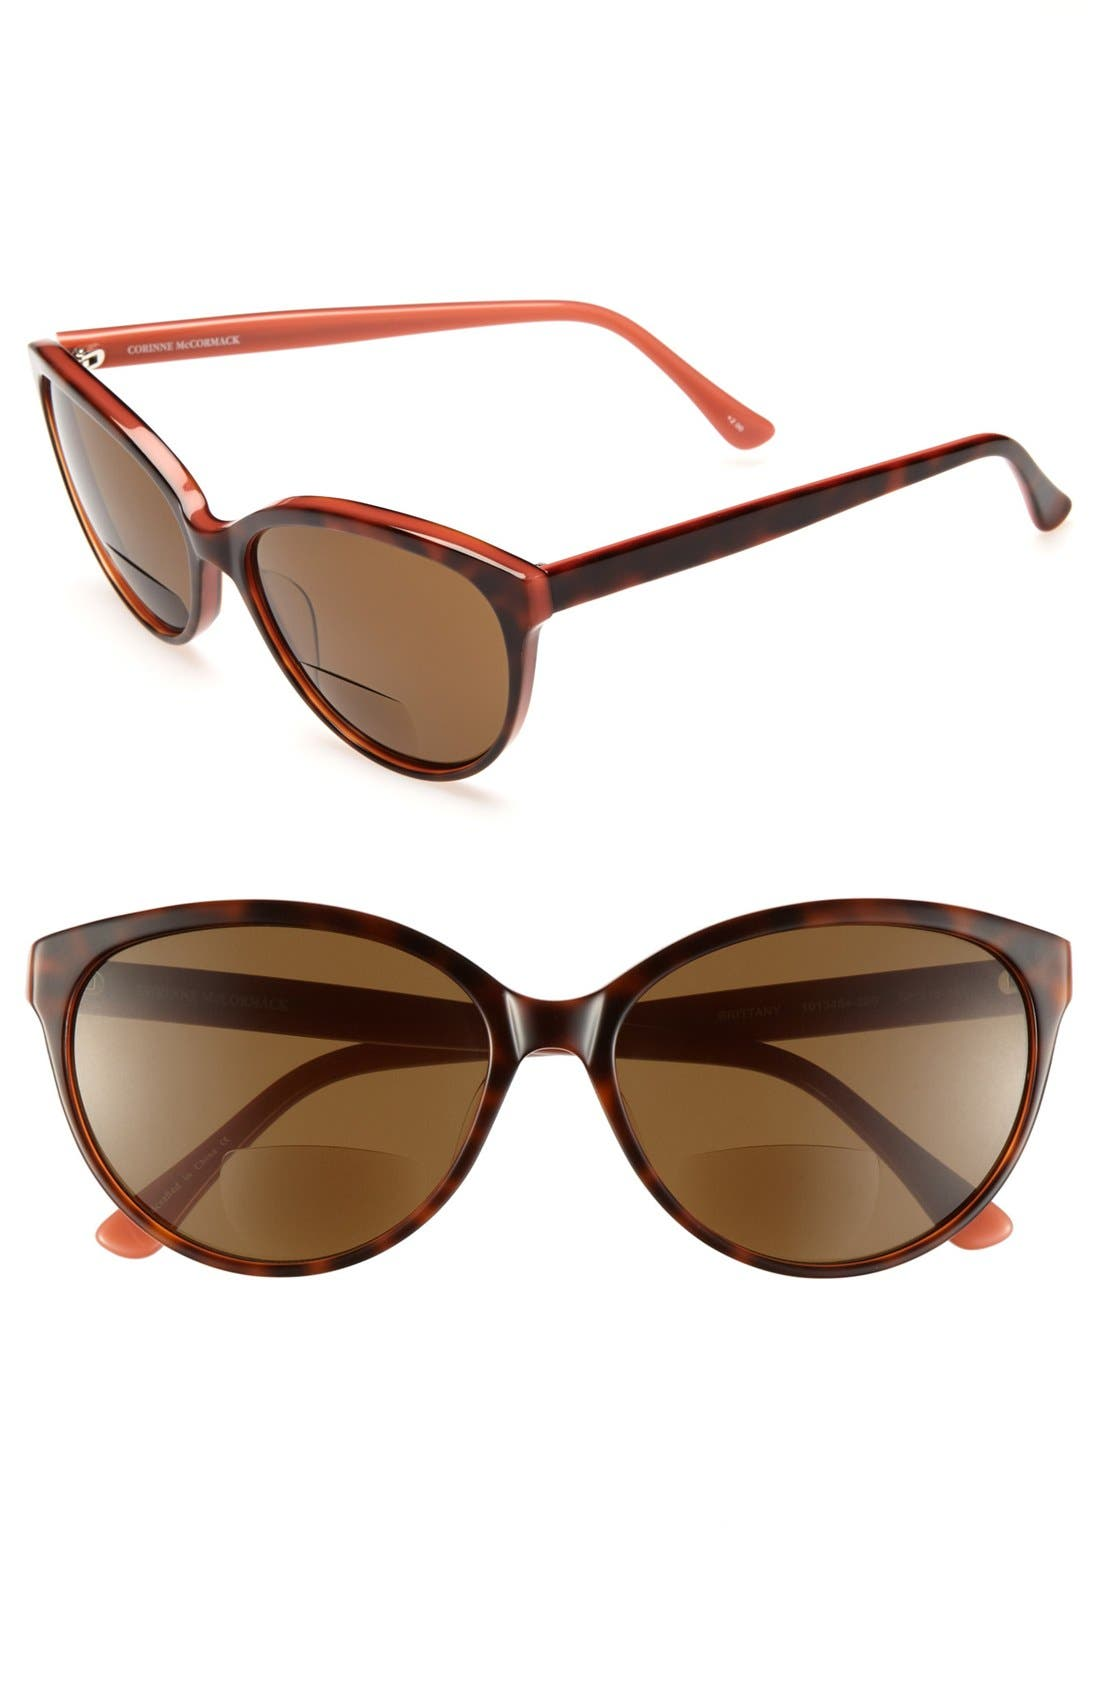 Alternate Image 1 Selected - Corinne McCormack 'Brittany' 58mm Reading Sunglasses